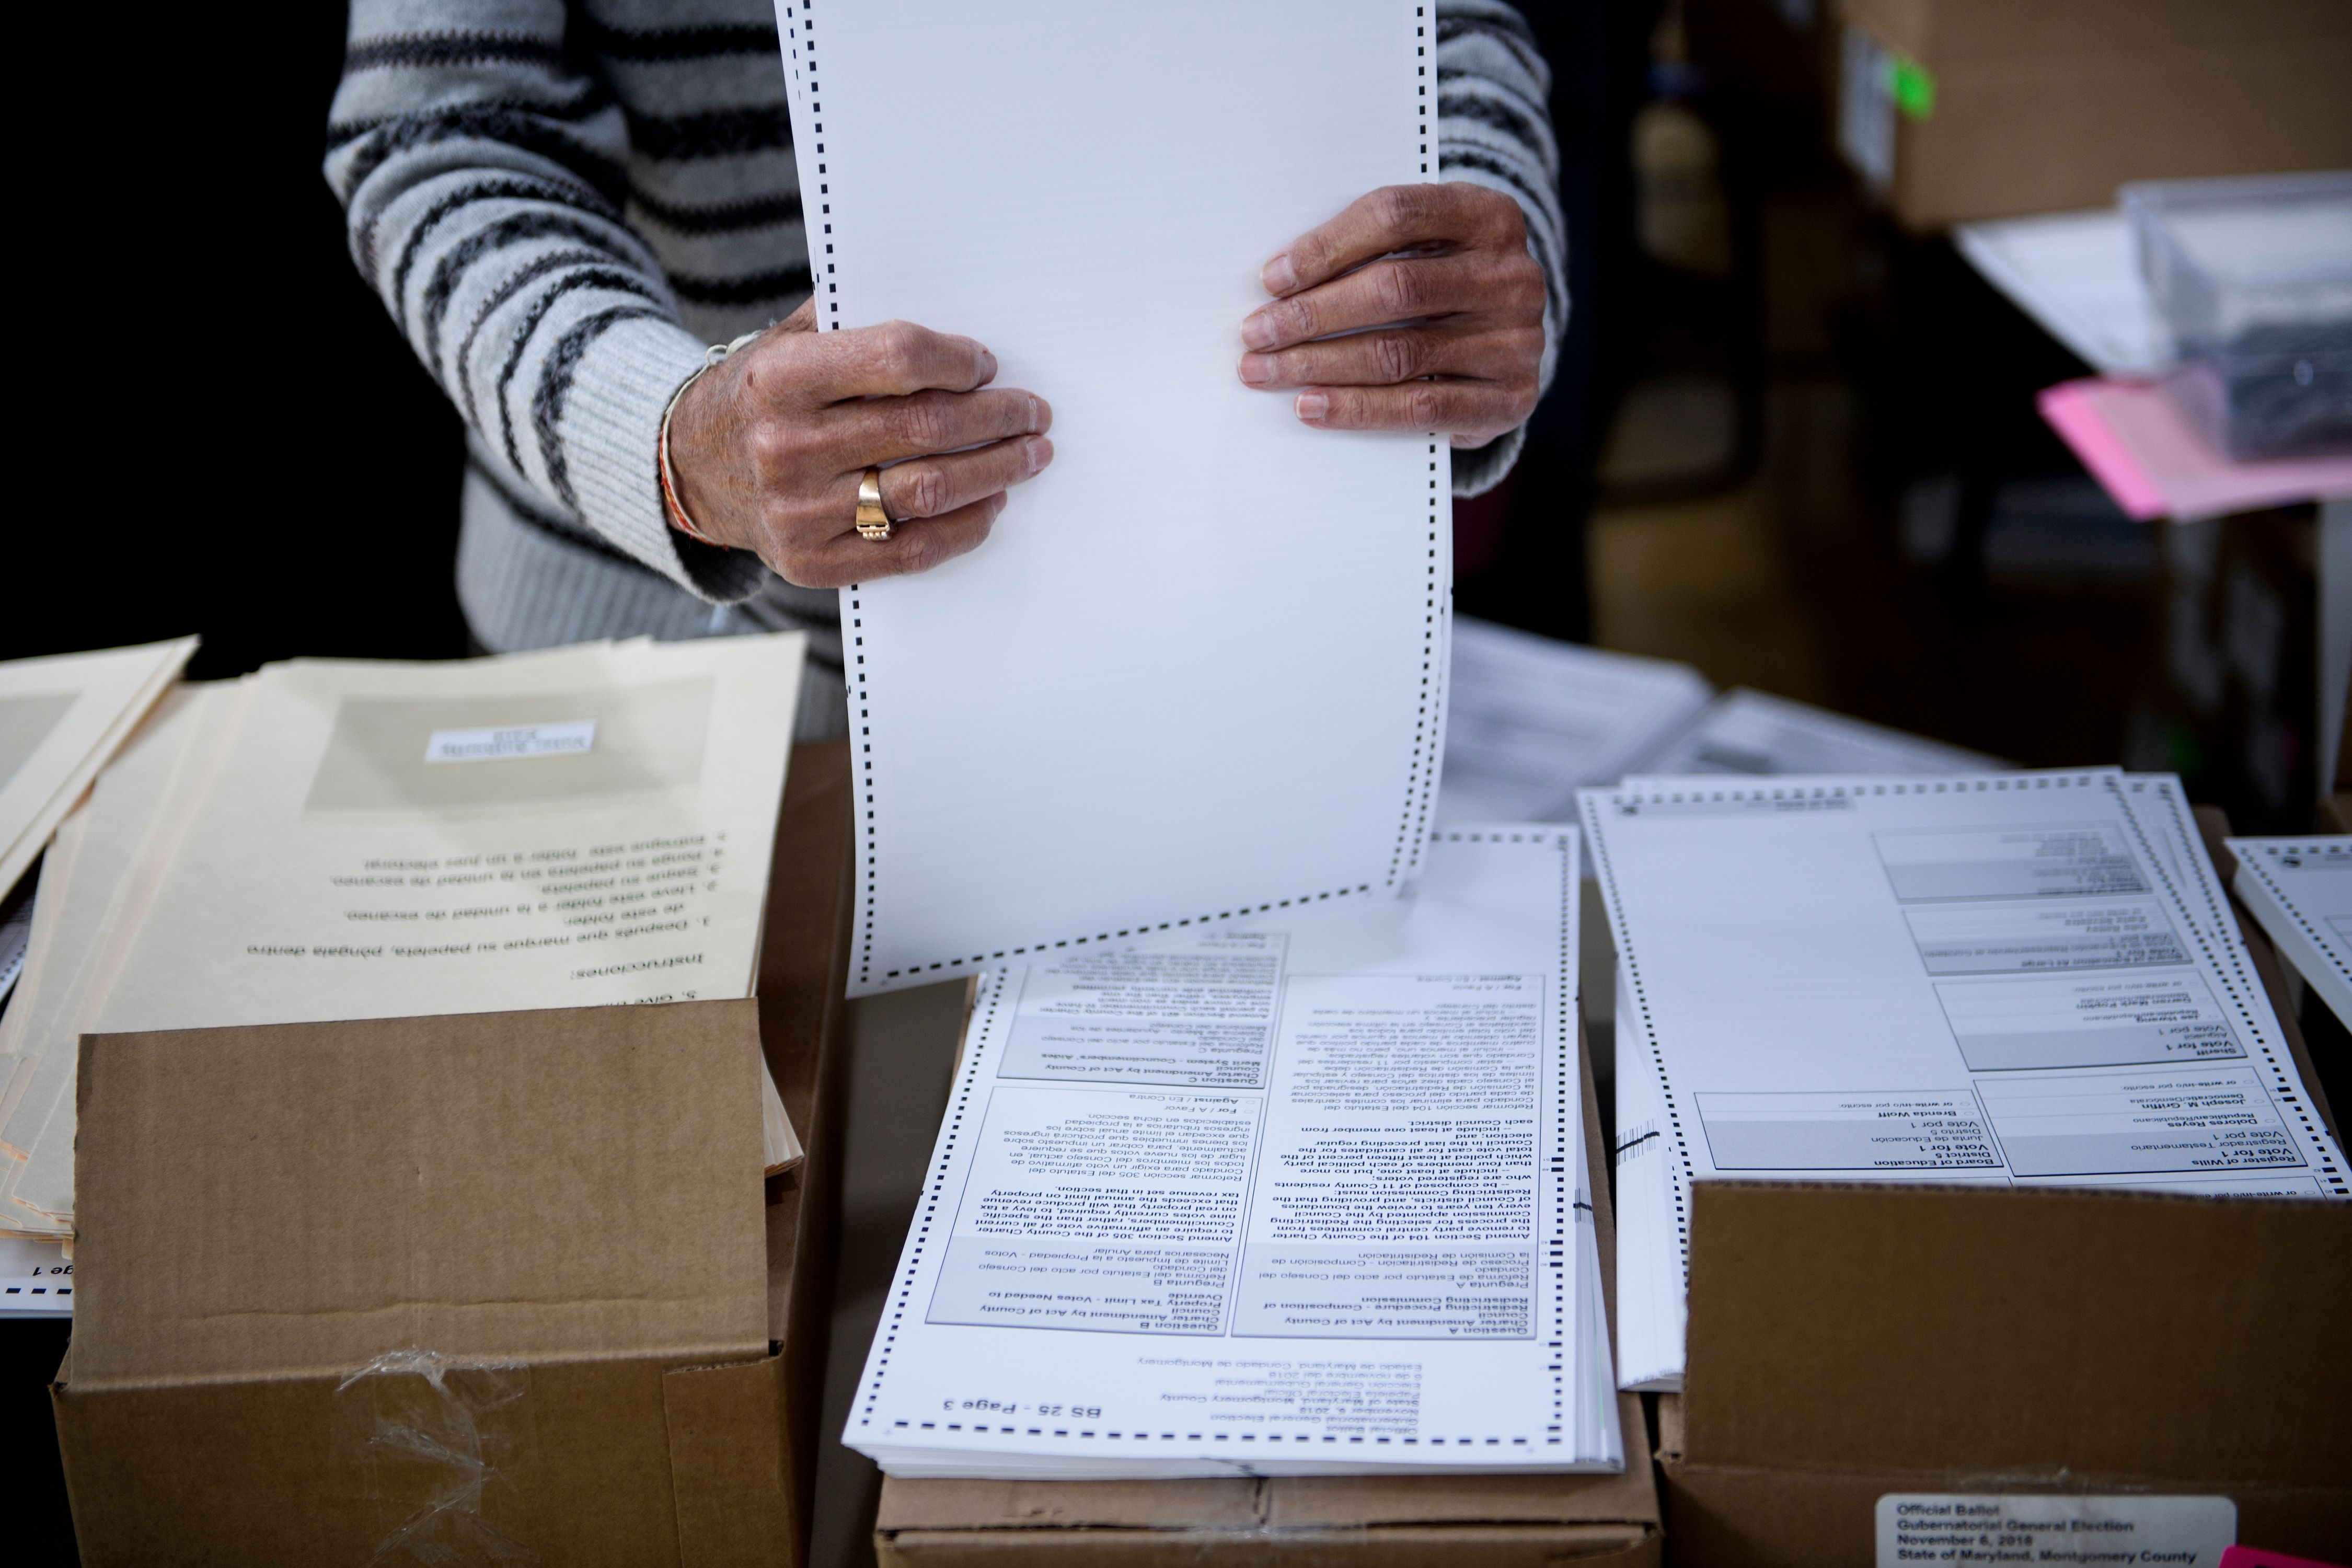 A man prepares ballots on Oct. 25 during early voting in Potomac, Maryland.